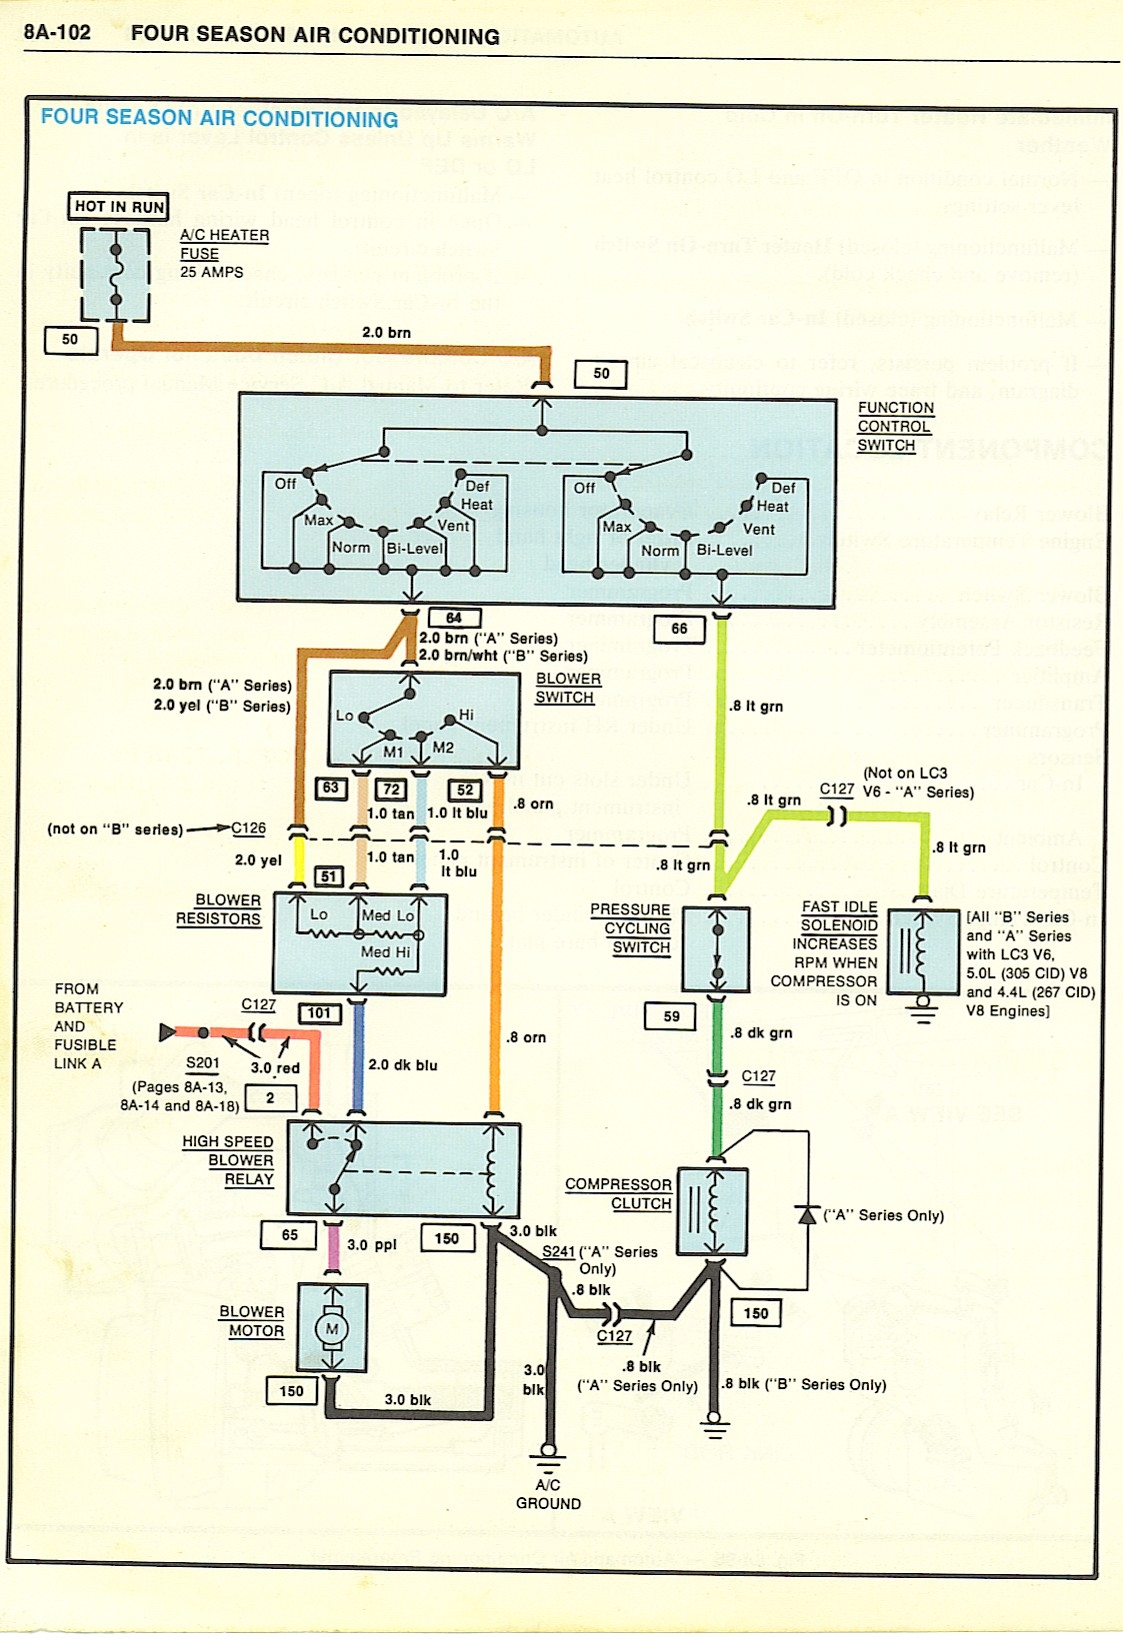 Chevy Diagrams 12v Socket Wiring Diagram Free Picture Schematic 1968 Camero A C Drawing